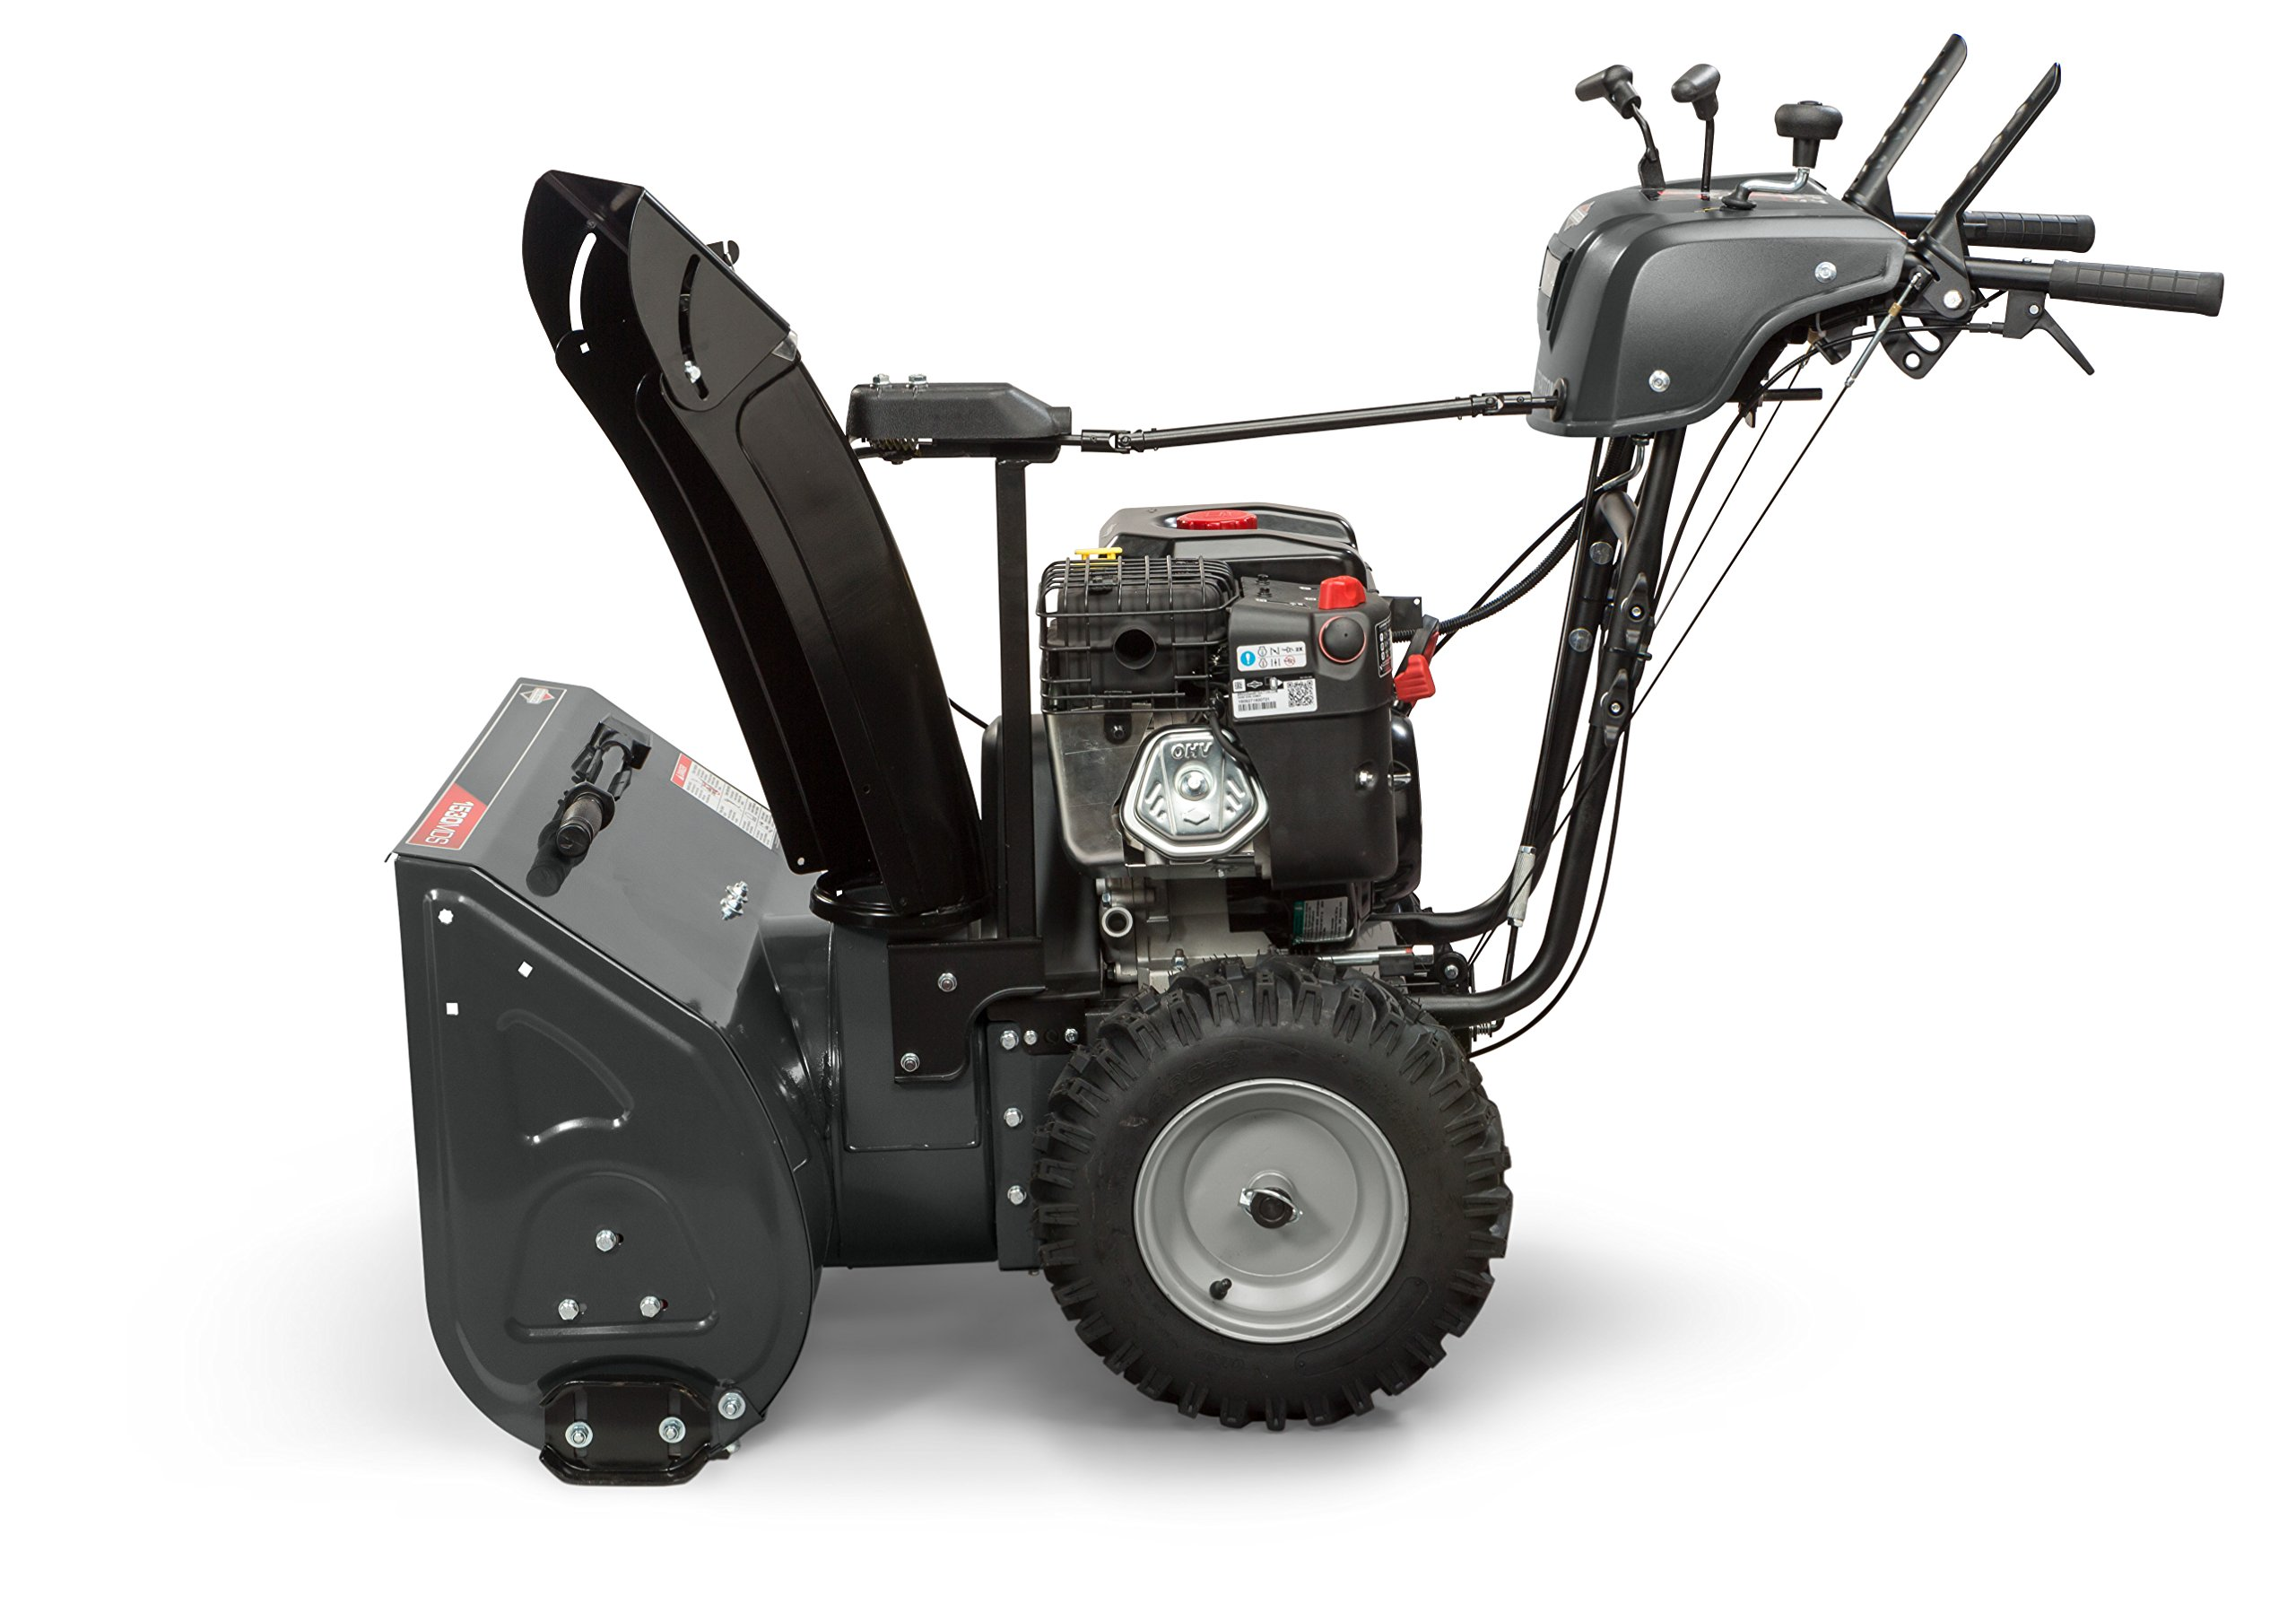 Briggs & Stratton 1530MDS Dual Stage Snowthrower Snow Thrower, 306cc by Briggs & Stratton (Image #4)